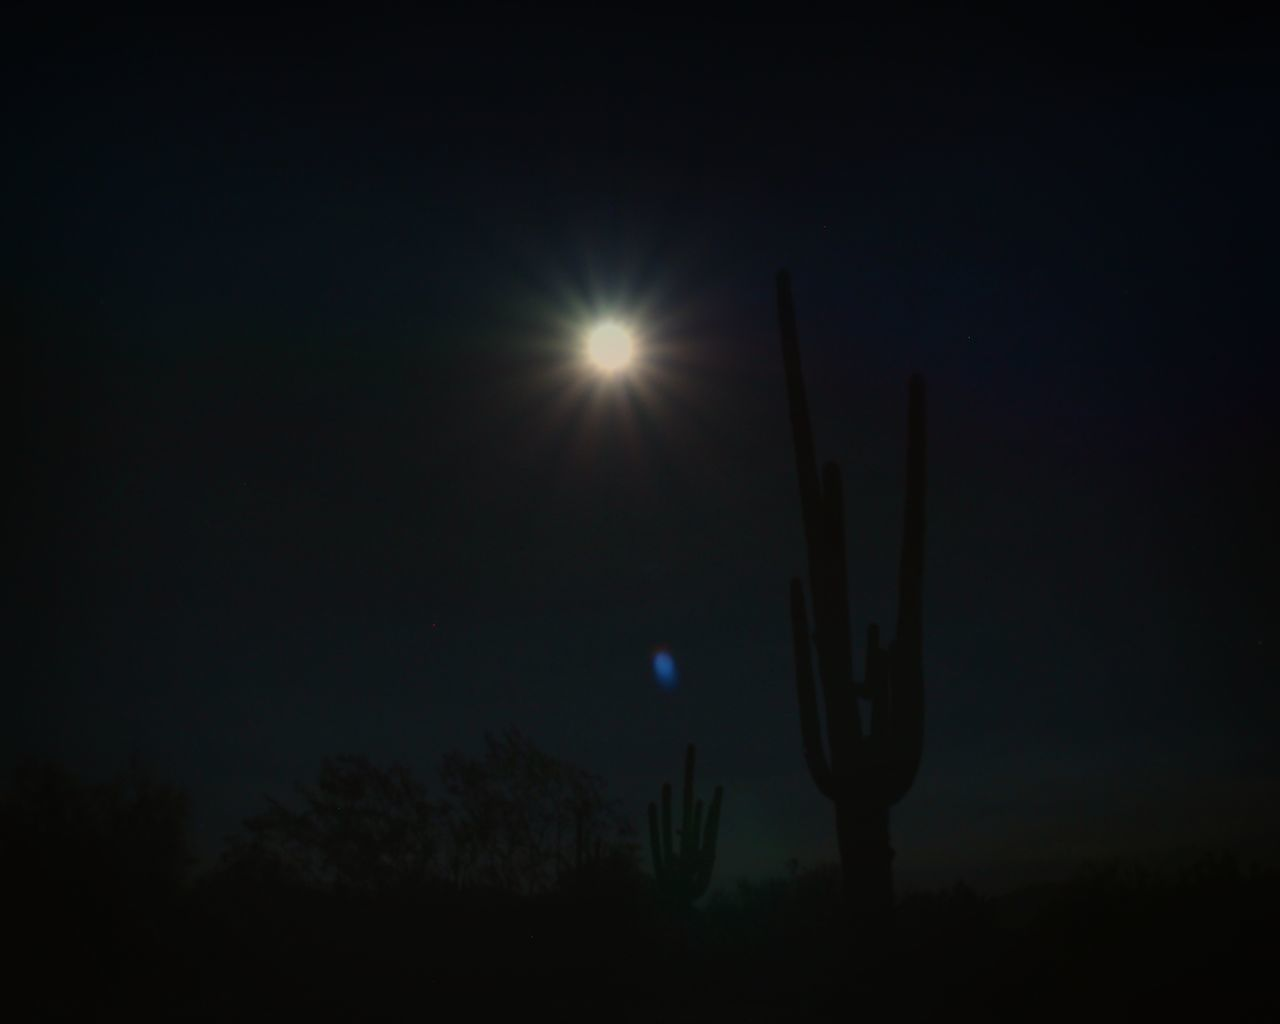 When the moon hits your eye... Arizona Arizona Nights Arizona Sky Beauty In Nature Cactus Cactus Moon Dark Desert Desert Moon Glowing Majestic Moon Shots Moonlight Nature Night Night Cactus Night Picture Nightphotography Saguaro Saguaro And Moon Scottsdale Sky Tranquil Scene Tranquility